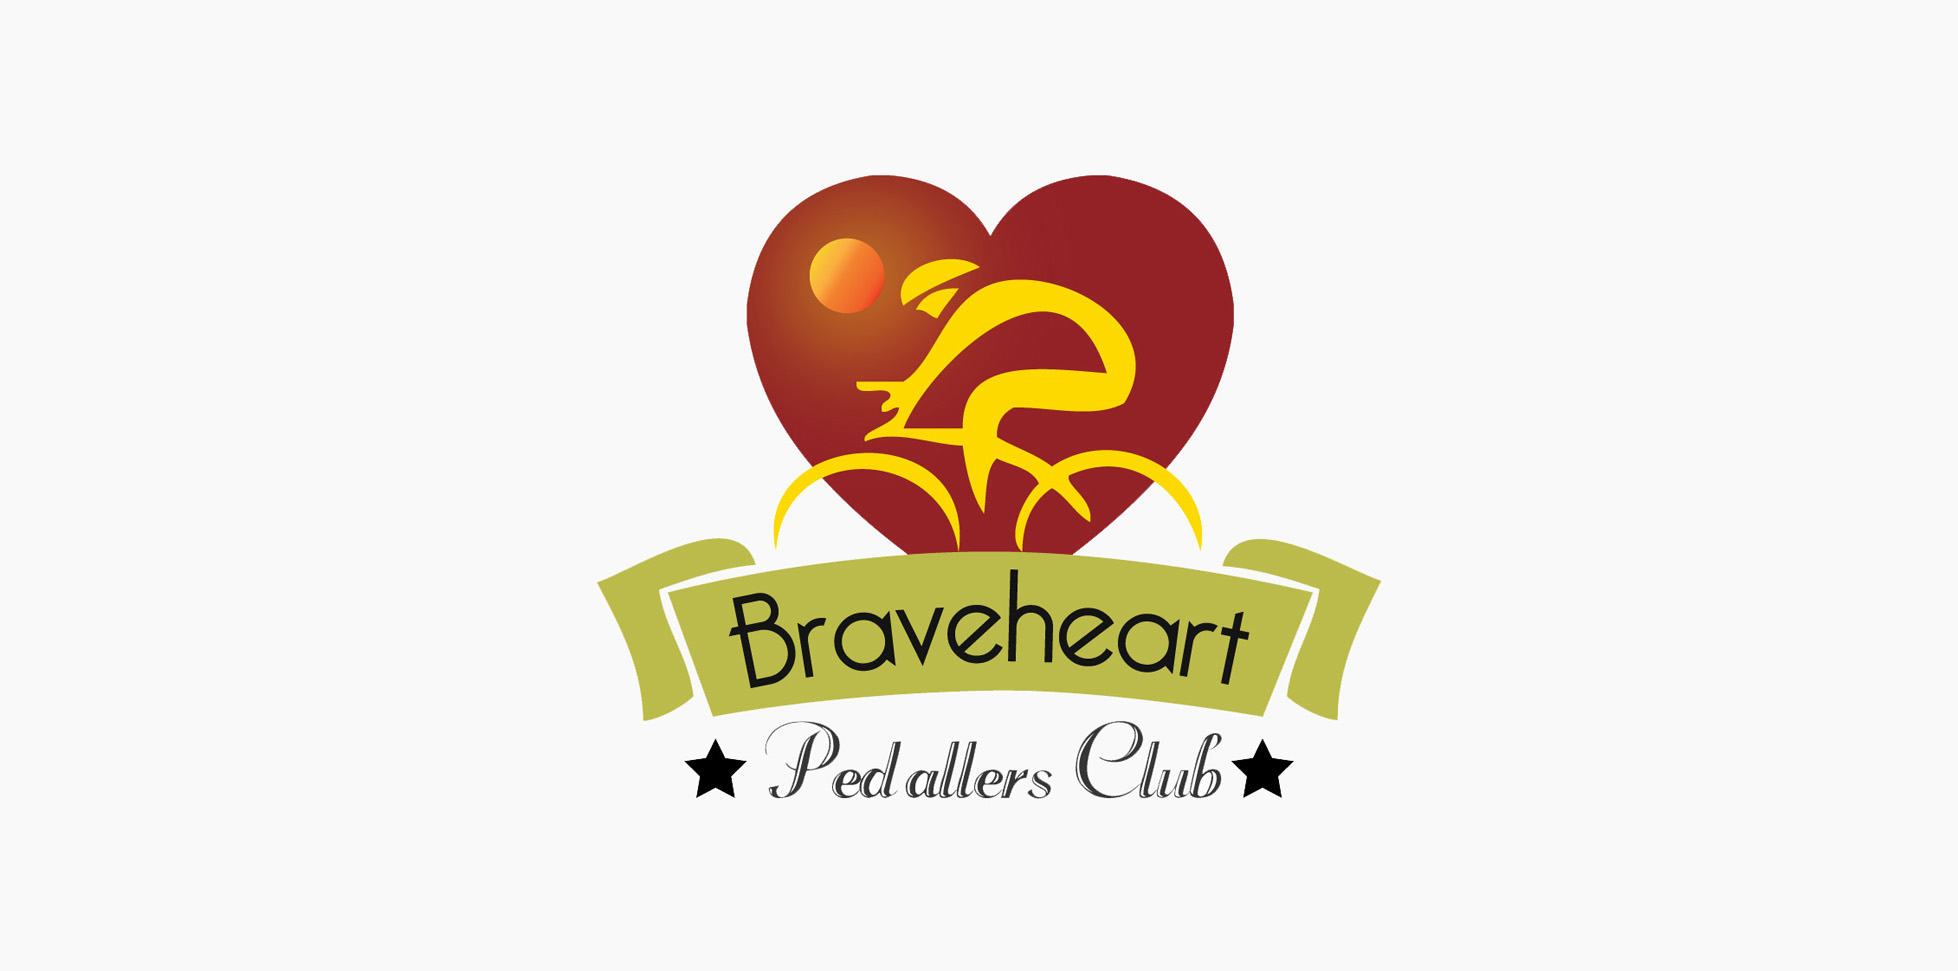 Braveheart Pedallers Club